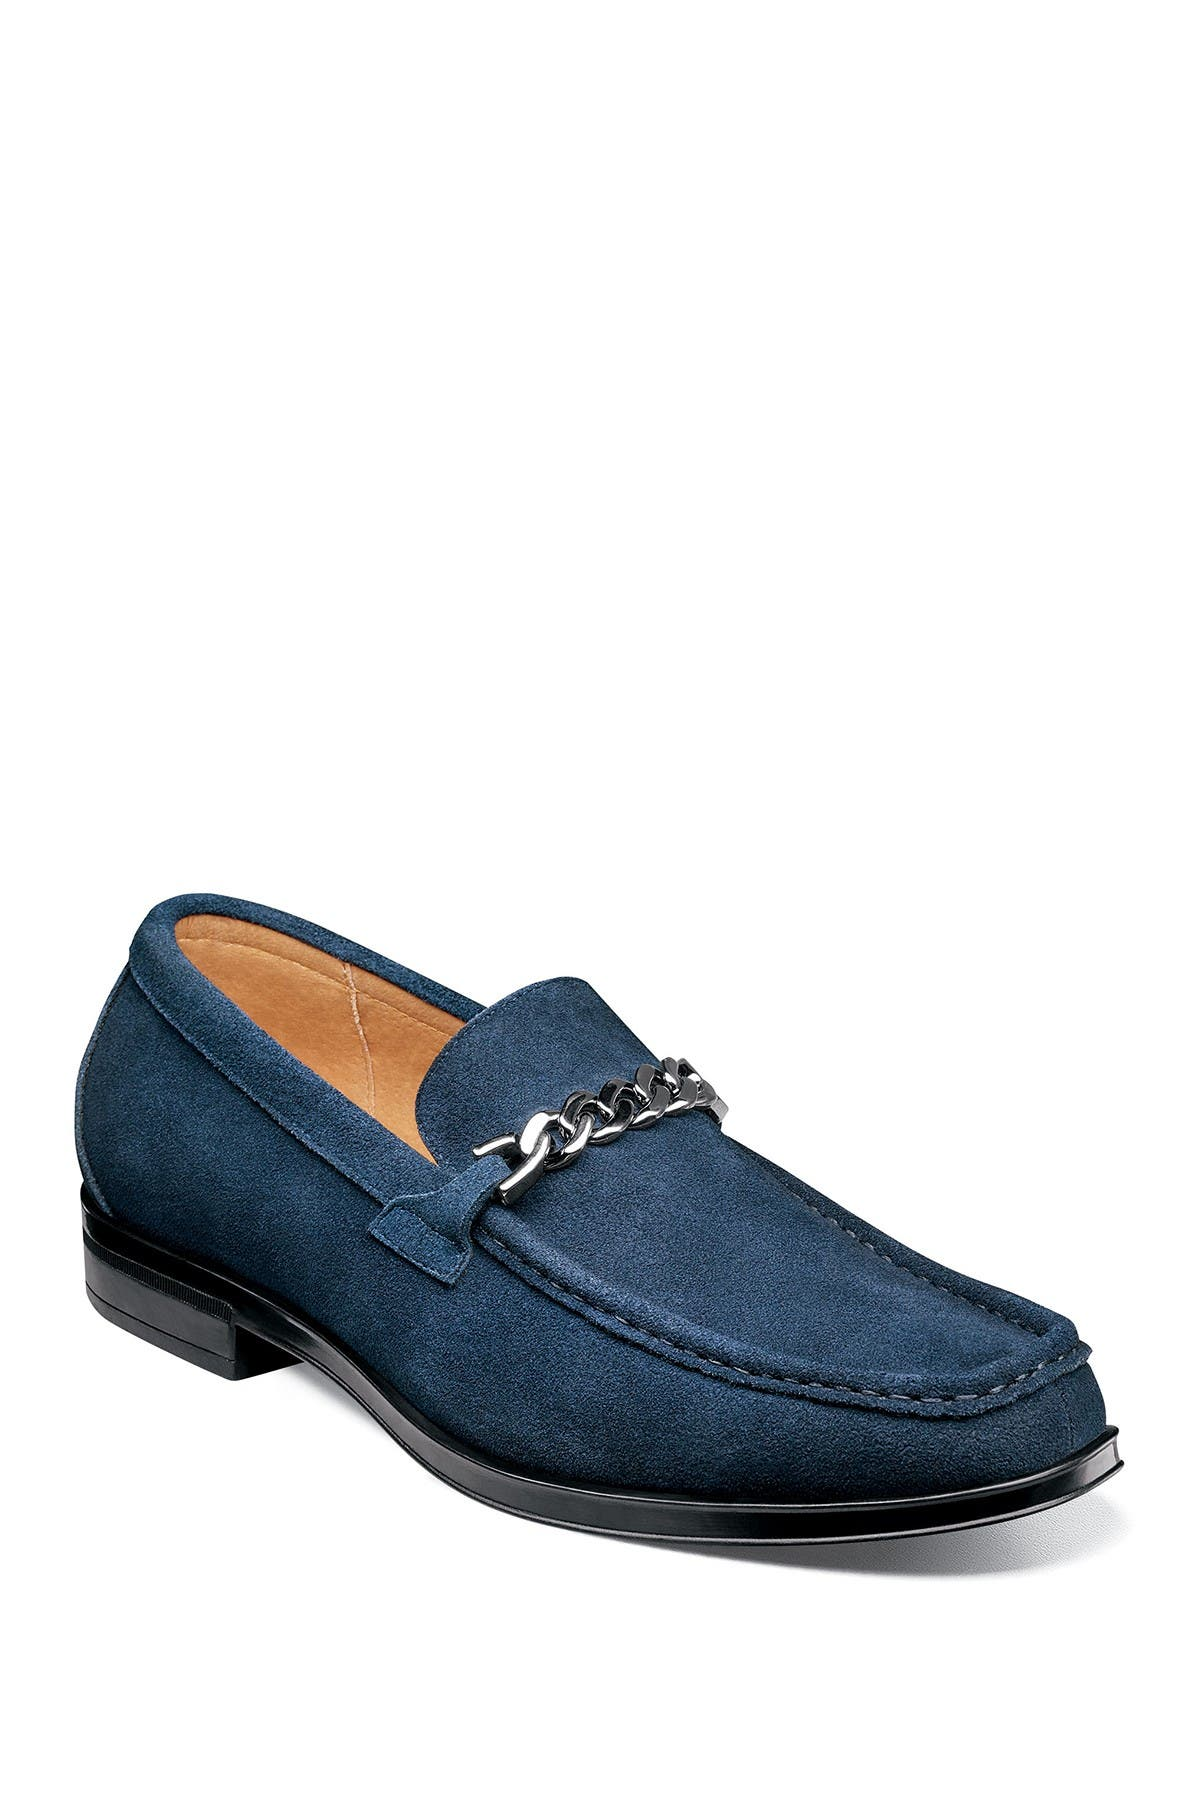 Image of Stacy Adams Norwood Moc Toe Bit Loafer - Wide Width Available